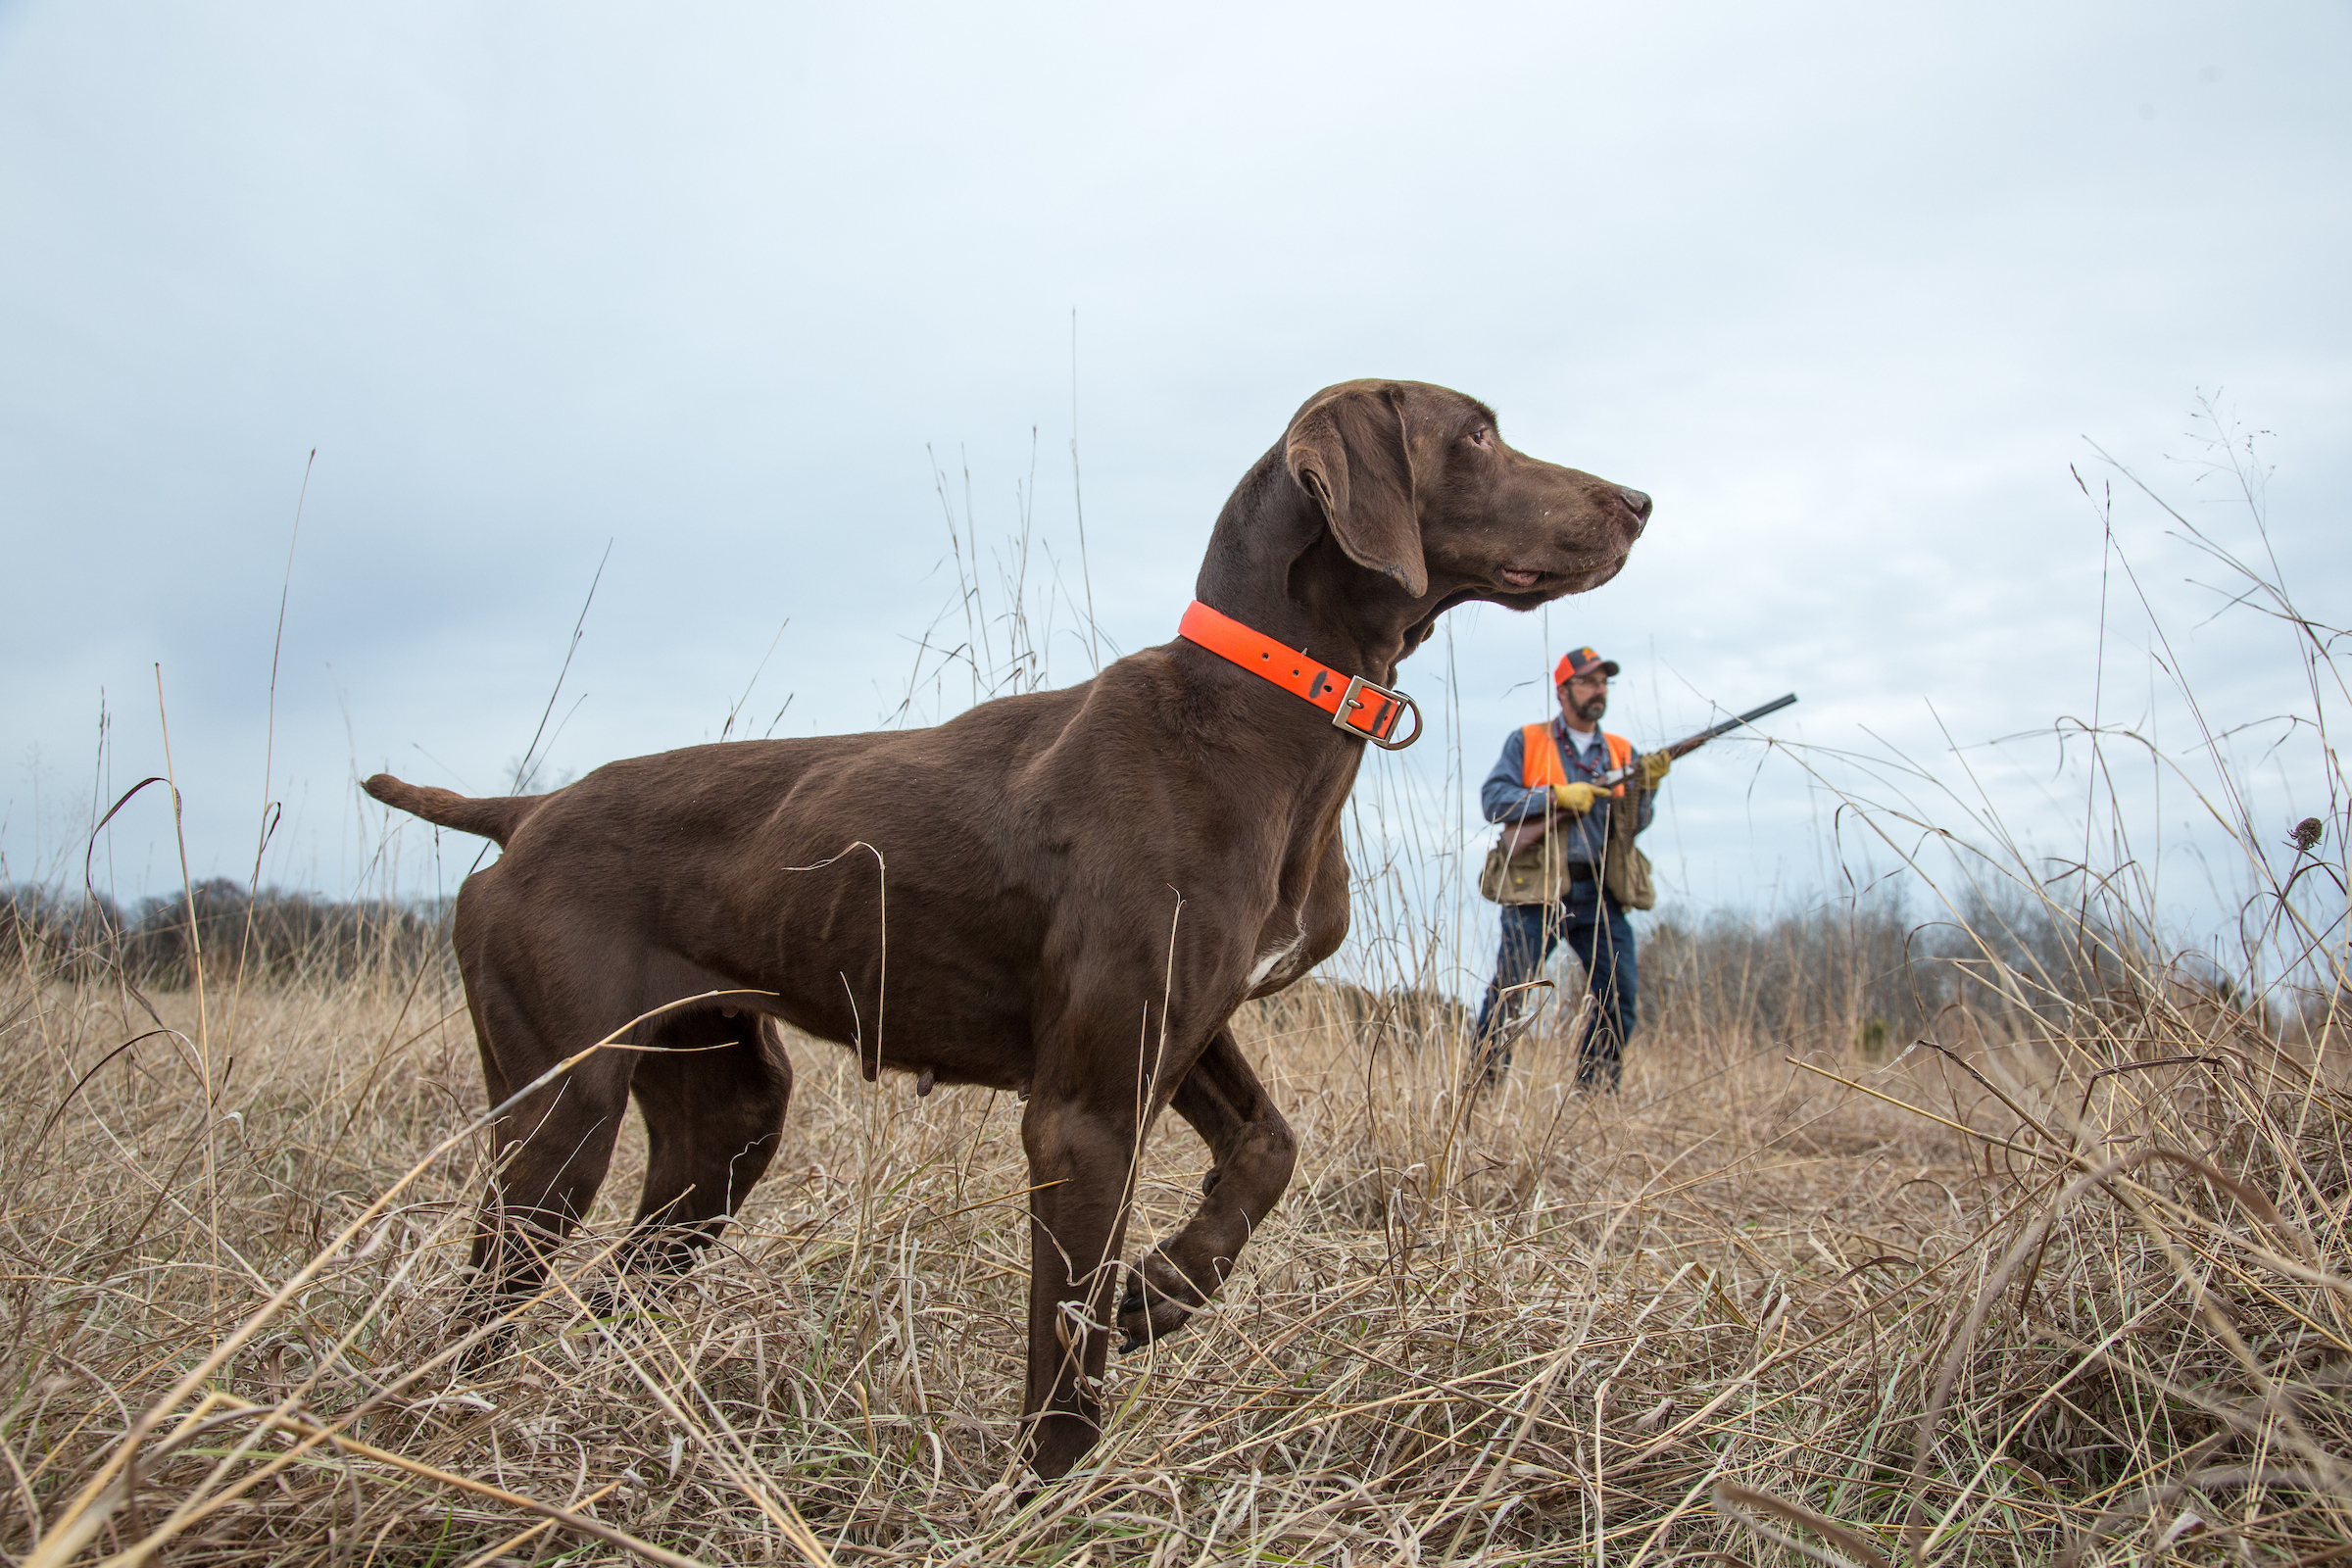 Finding and Starting Your Pheasant Dog: 7 Tips From the